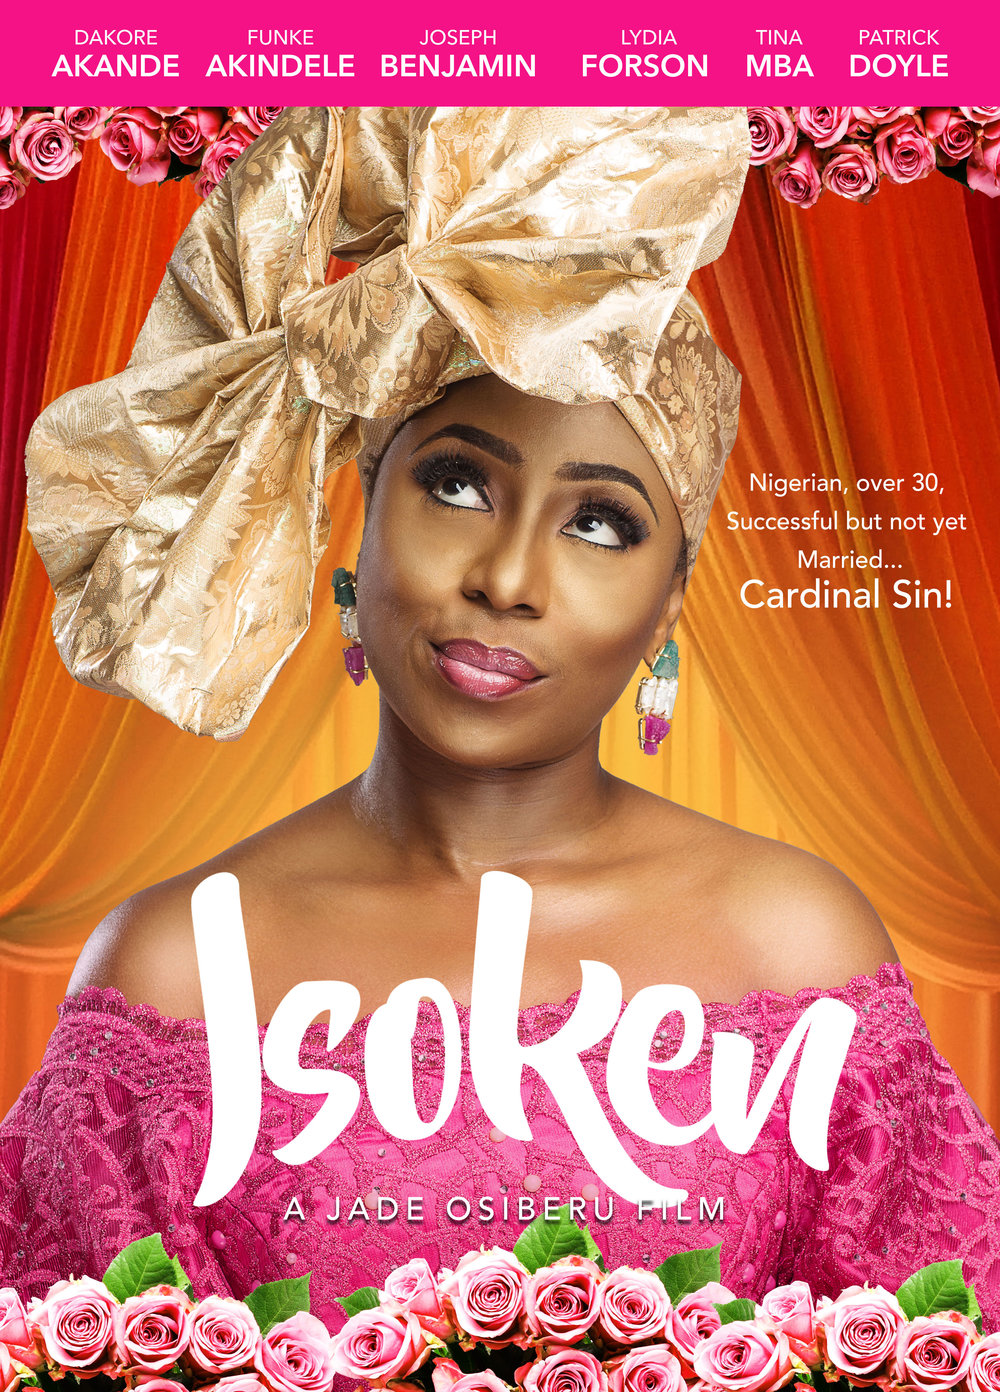 SYNOPSIS - Everyone in the Osayande family worries about Isoken. Although she has what appears to have a perfect life - beautiful, successful and surrounded by great family and friends - Isoken is still unmarried at 34 which, in a culture obsessed with married, is serious cause for concern. Things come to a head at her youngest sister's wedding when her overbearing mother thrusts her into an orchestrated matchmaking with the ultimate Edo man, Osaze. Osaze is handsome, successful and from a good family, making him perfect Nigerian husband material.But in an unexpected turn of events, Isoken meets Kevin who she finds herself falling in love with and he just might be what she truly wants in a partner. The only problem is, not only is he not an Edo man, he is Oyinbo (Caucasian). Isoken is a romantic dramedy that explores cultural expectations, racial stereotypes and the bonds that unite families in touching, dramatic and comedic ways.